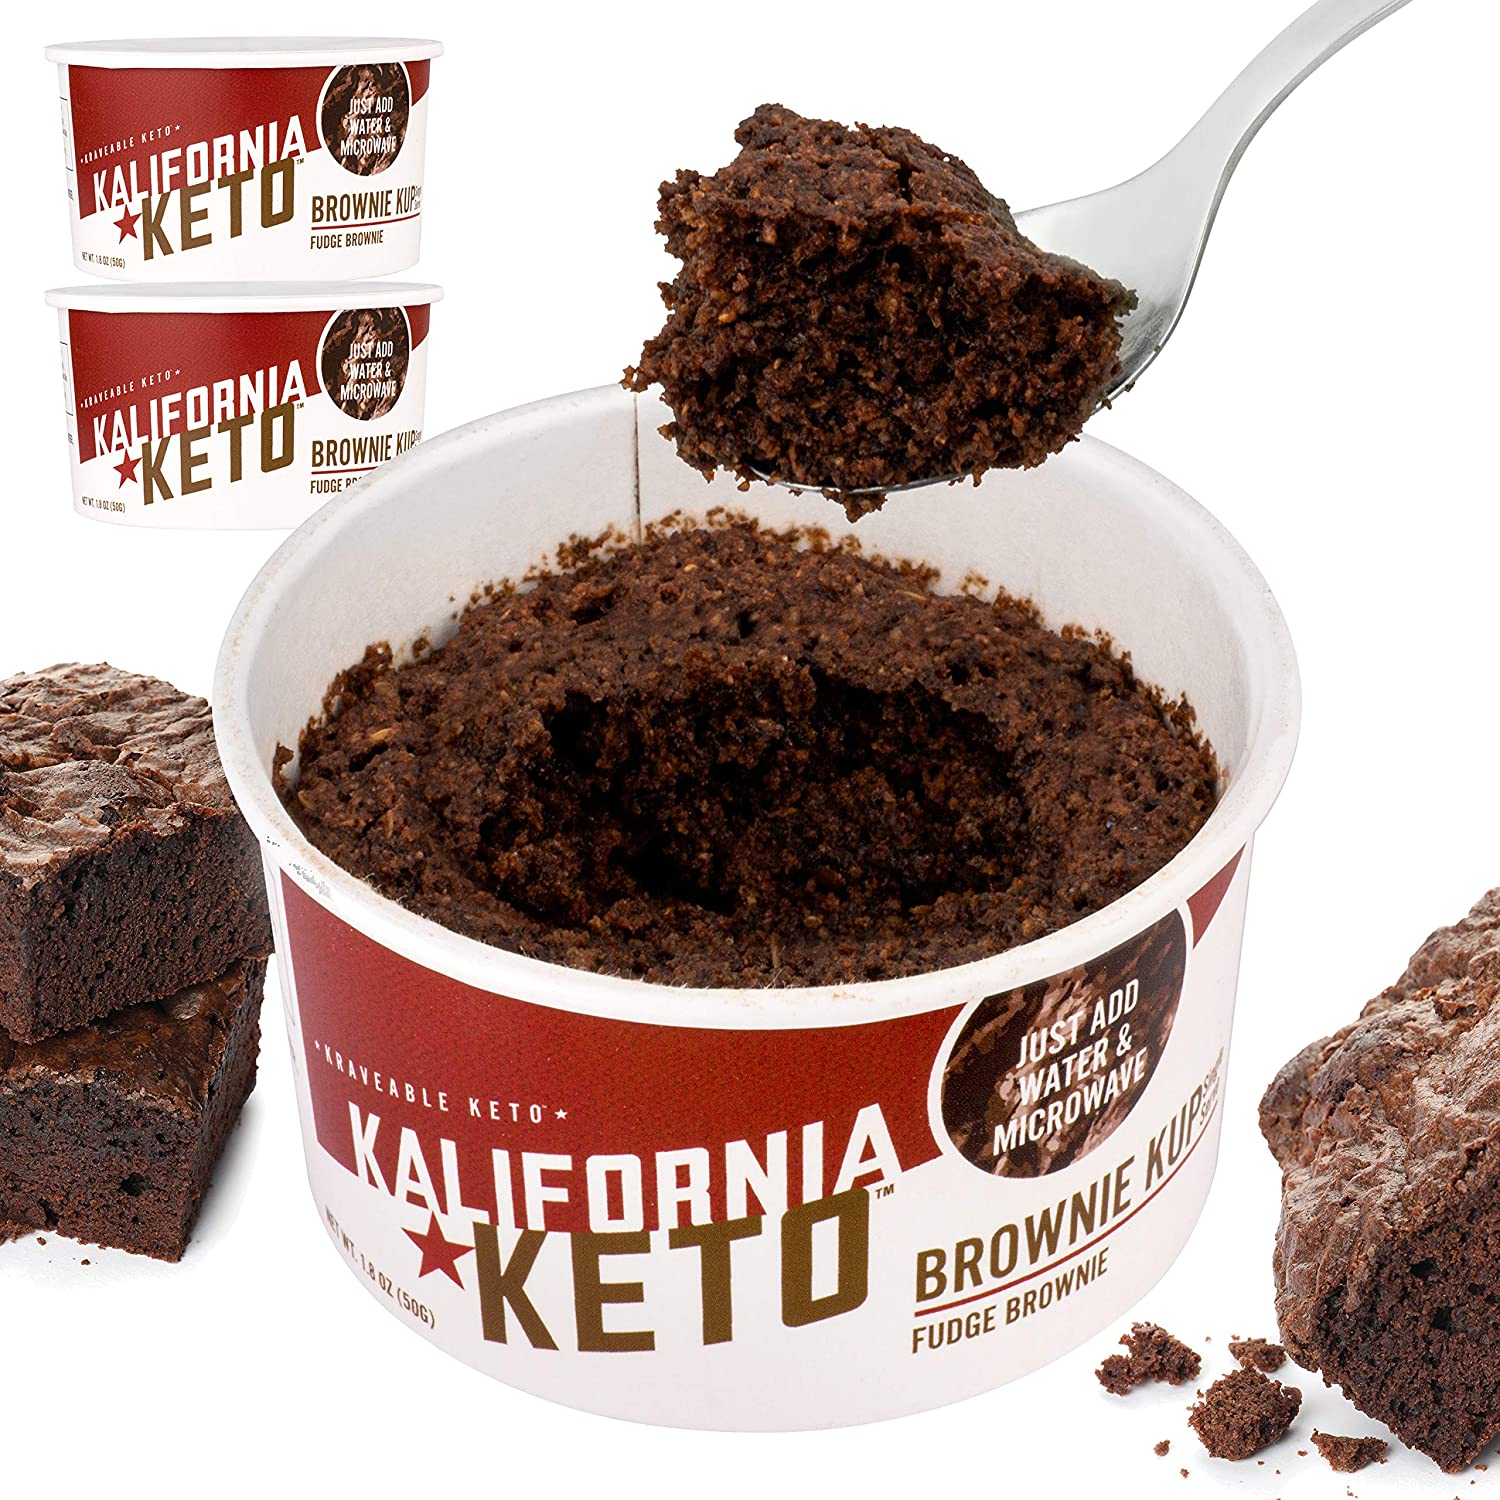 Kalifornia Spring new work one famous after another Keto Brownie Cup – Keto-friendly Carb Low and